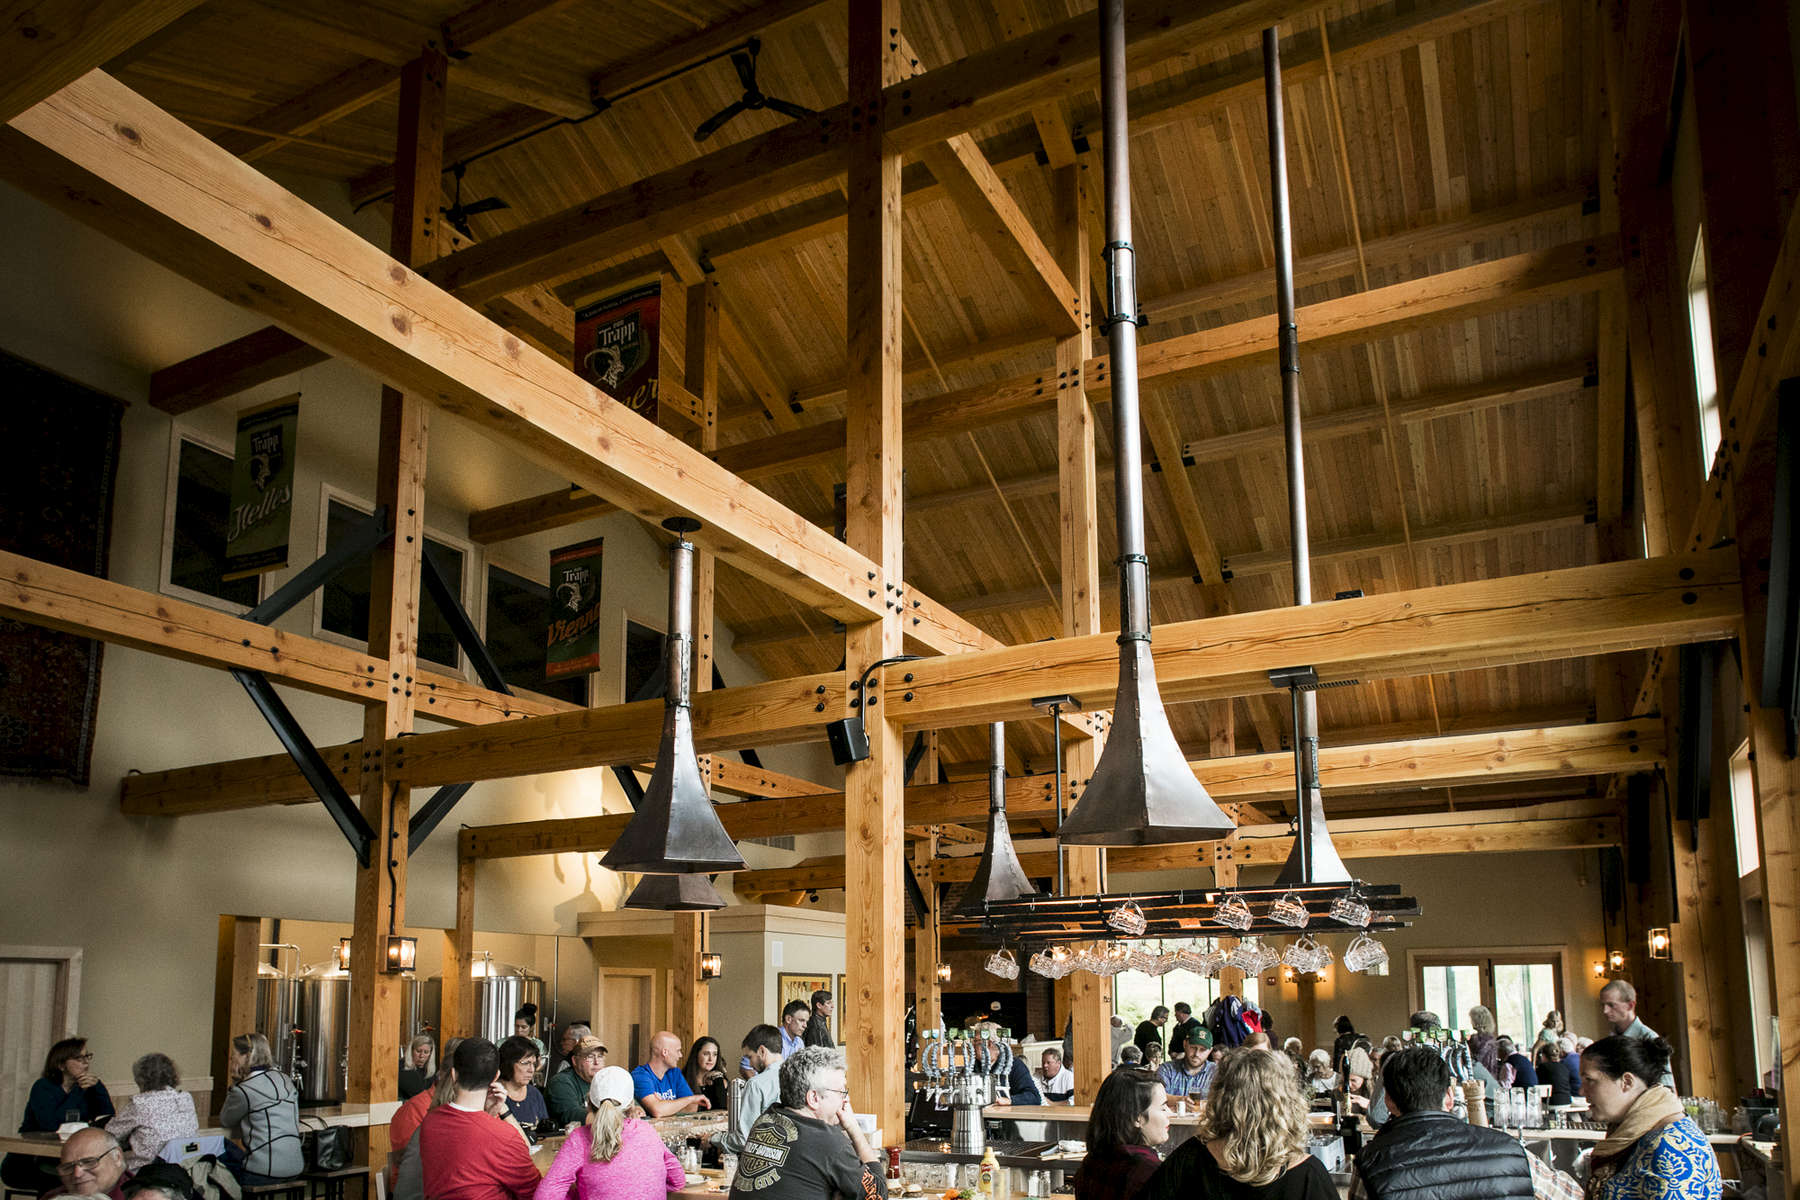 Exposed beam architecture at the Von Trapp Brewing Bierhall in Stowe Vermont.